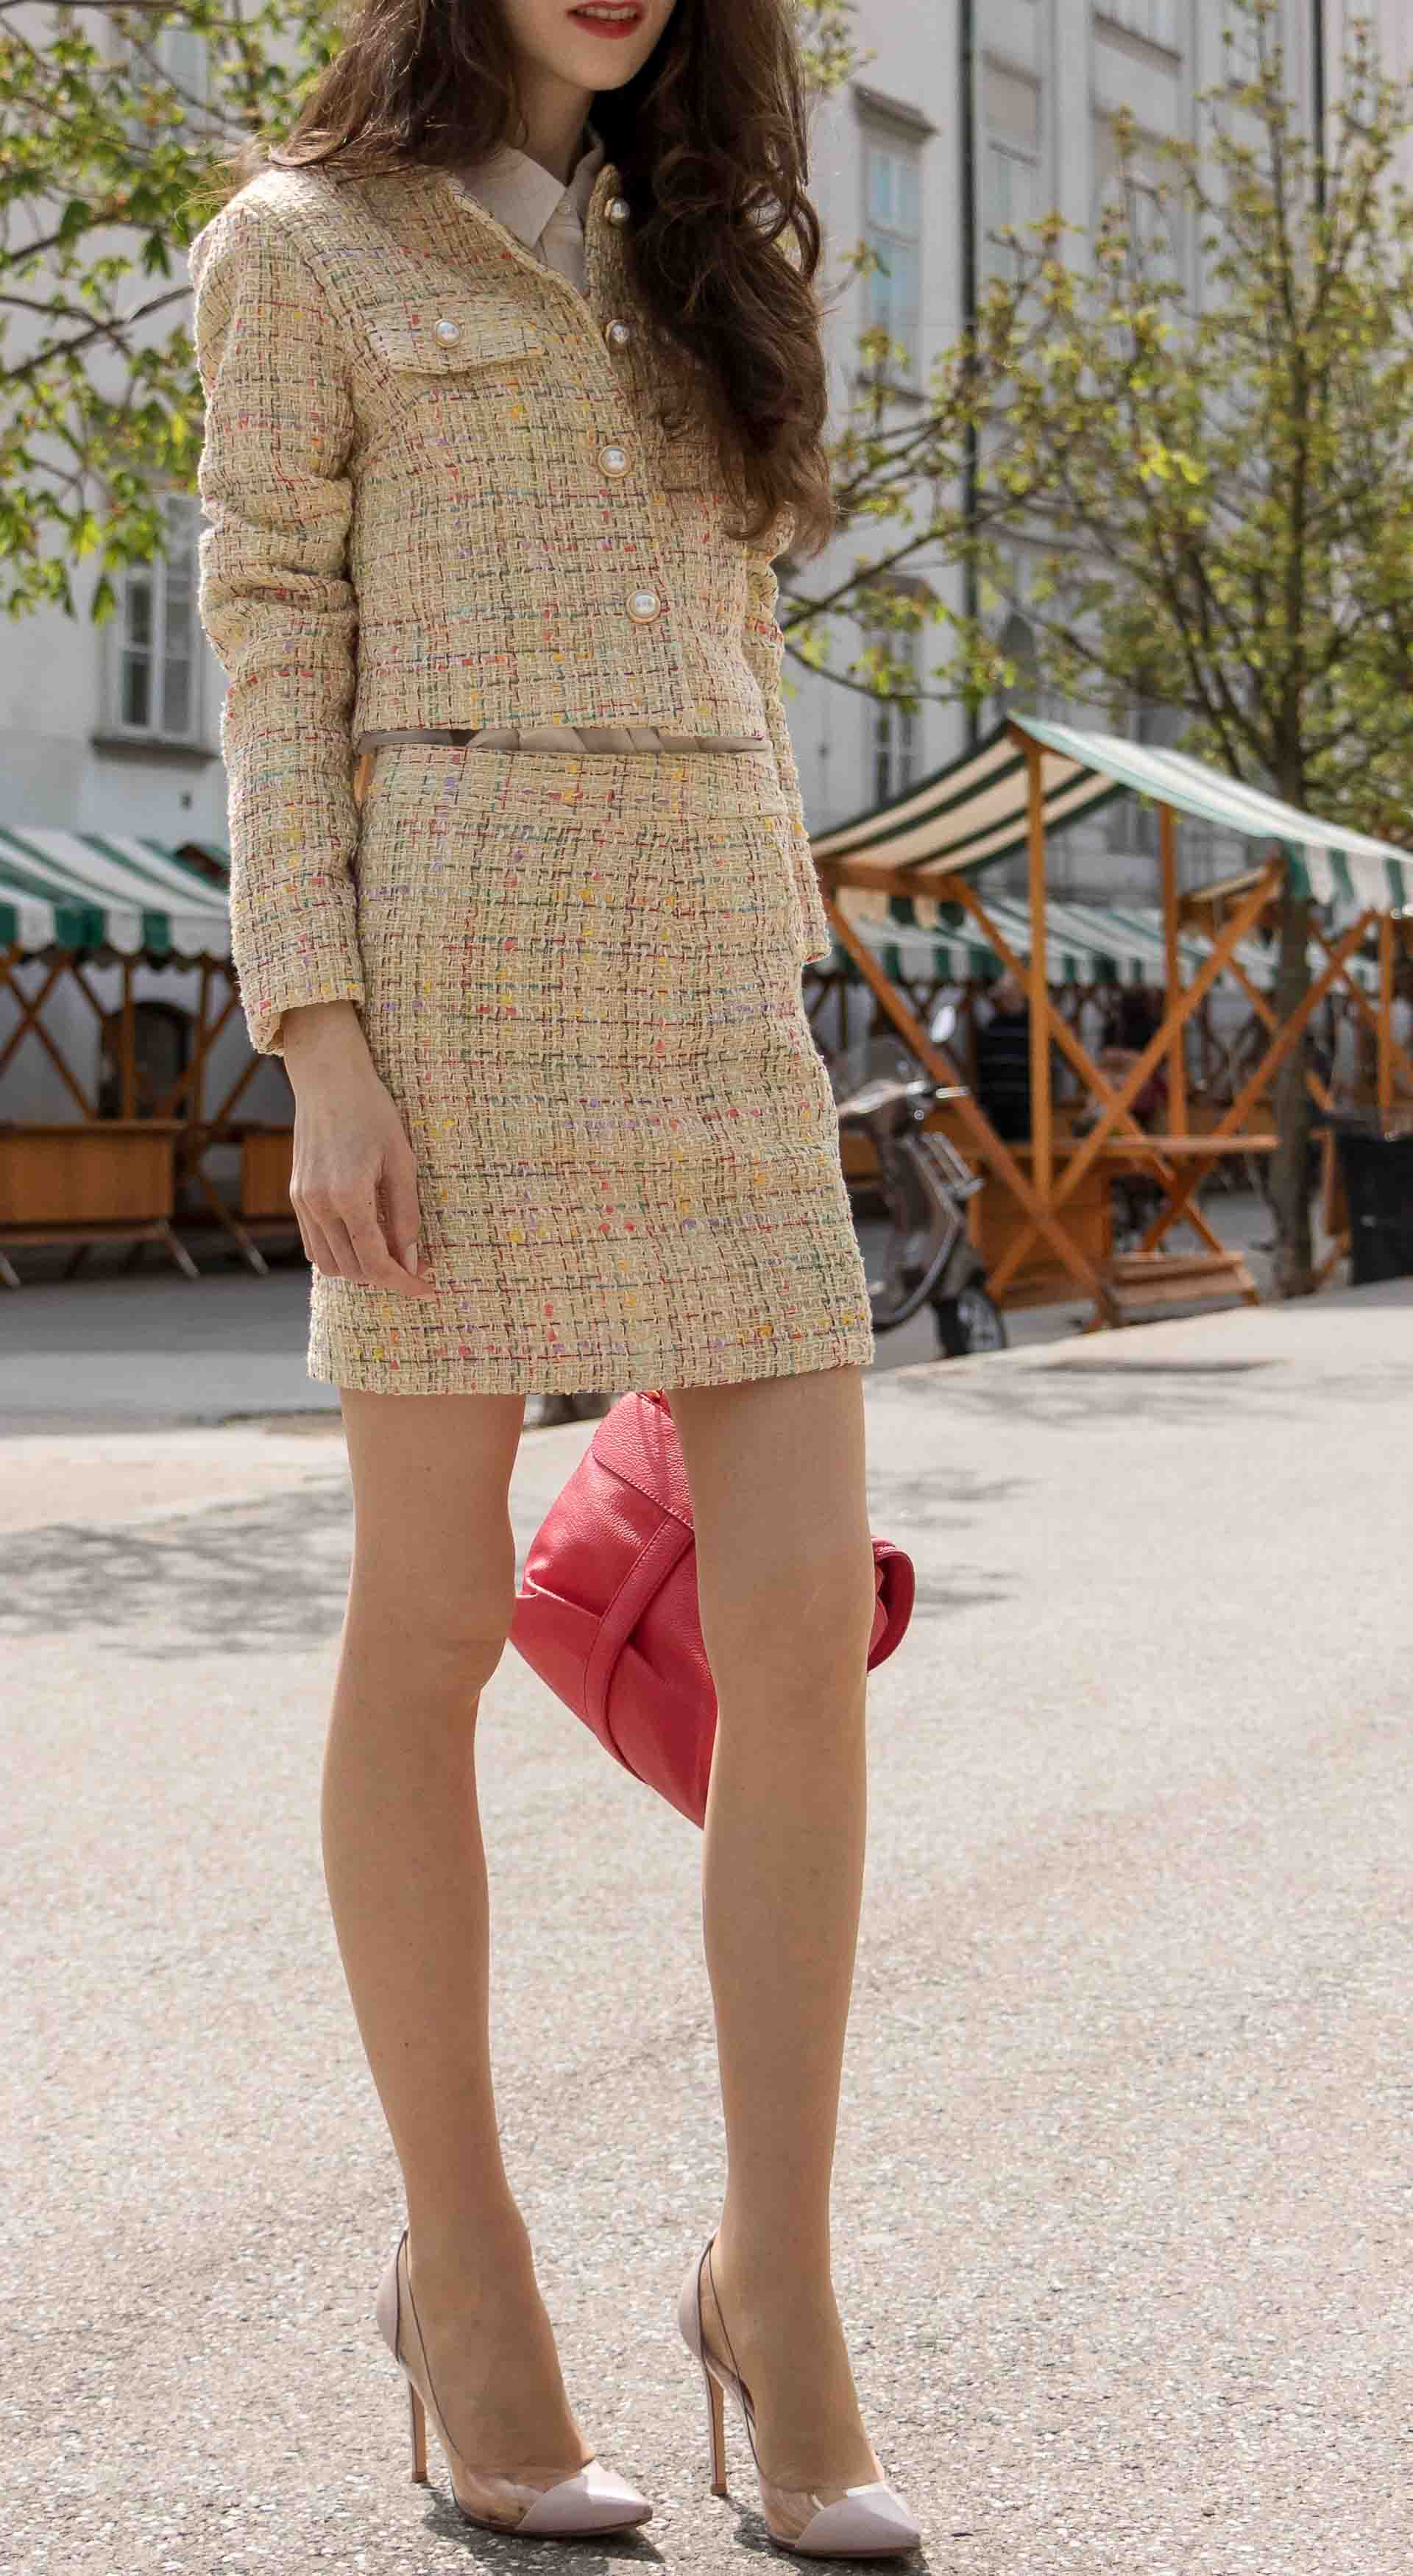 Fashion Blogger Veronika Lipar of Brunette from Wall Street wearing Storets yellow tweed mini skirt suit, Gianvito Rossi plexi pumps, See by Chloe pink top handle bag, Adam Selman x Lespecs white Lolita sunglasses standing on the street in Ljubljana Slovenia